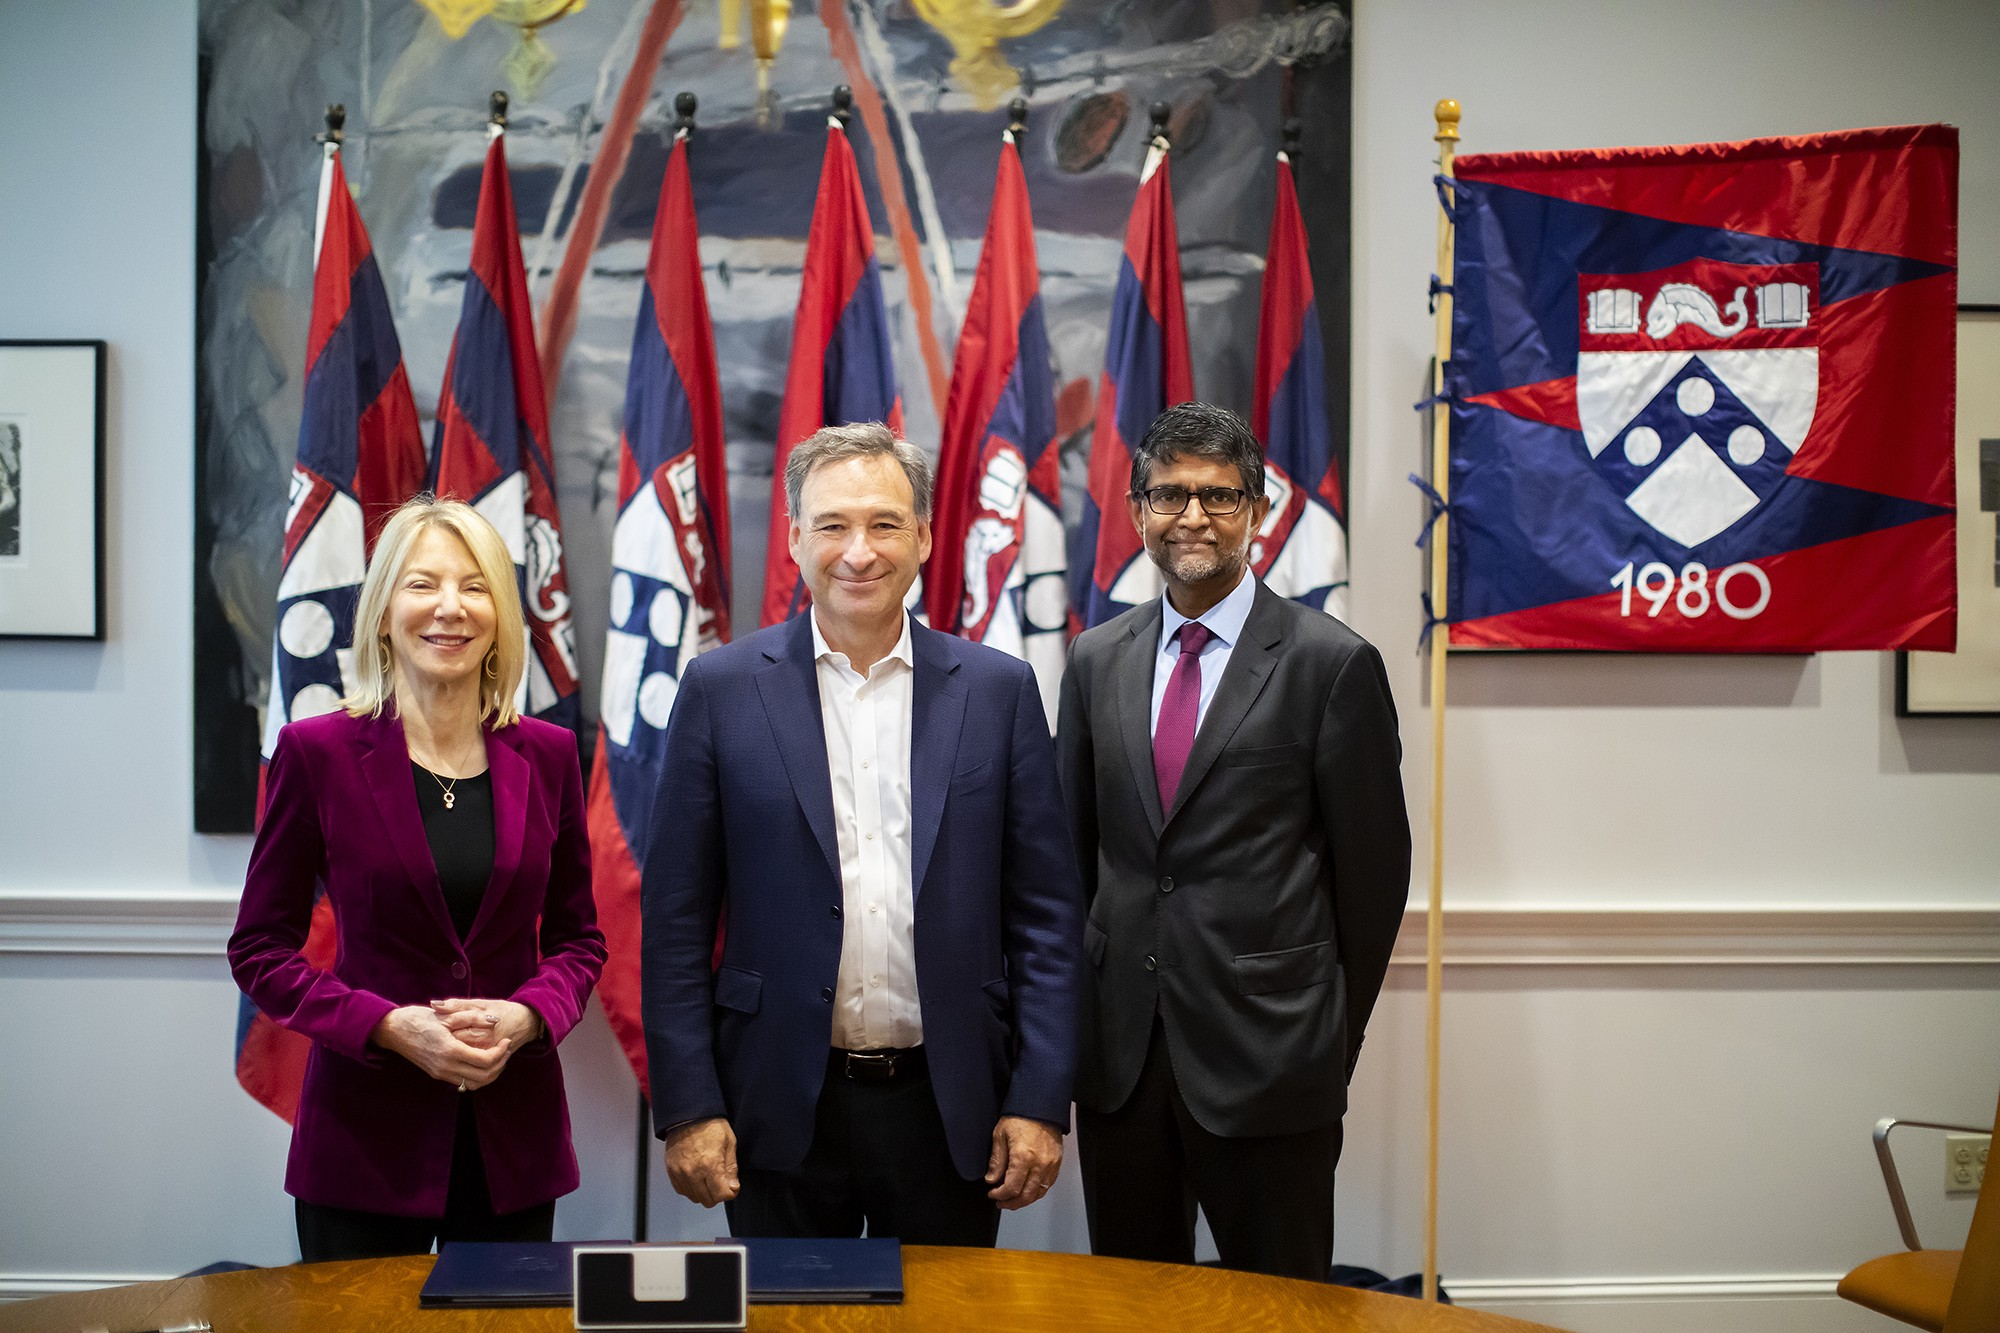 Amy Gutmann, Harlan Stone and Vijay Kumar stand in front of Penn flags and a class of 1980 banner.